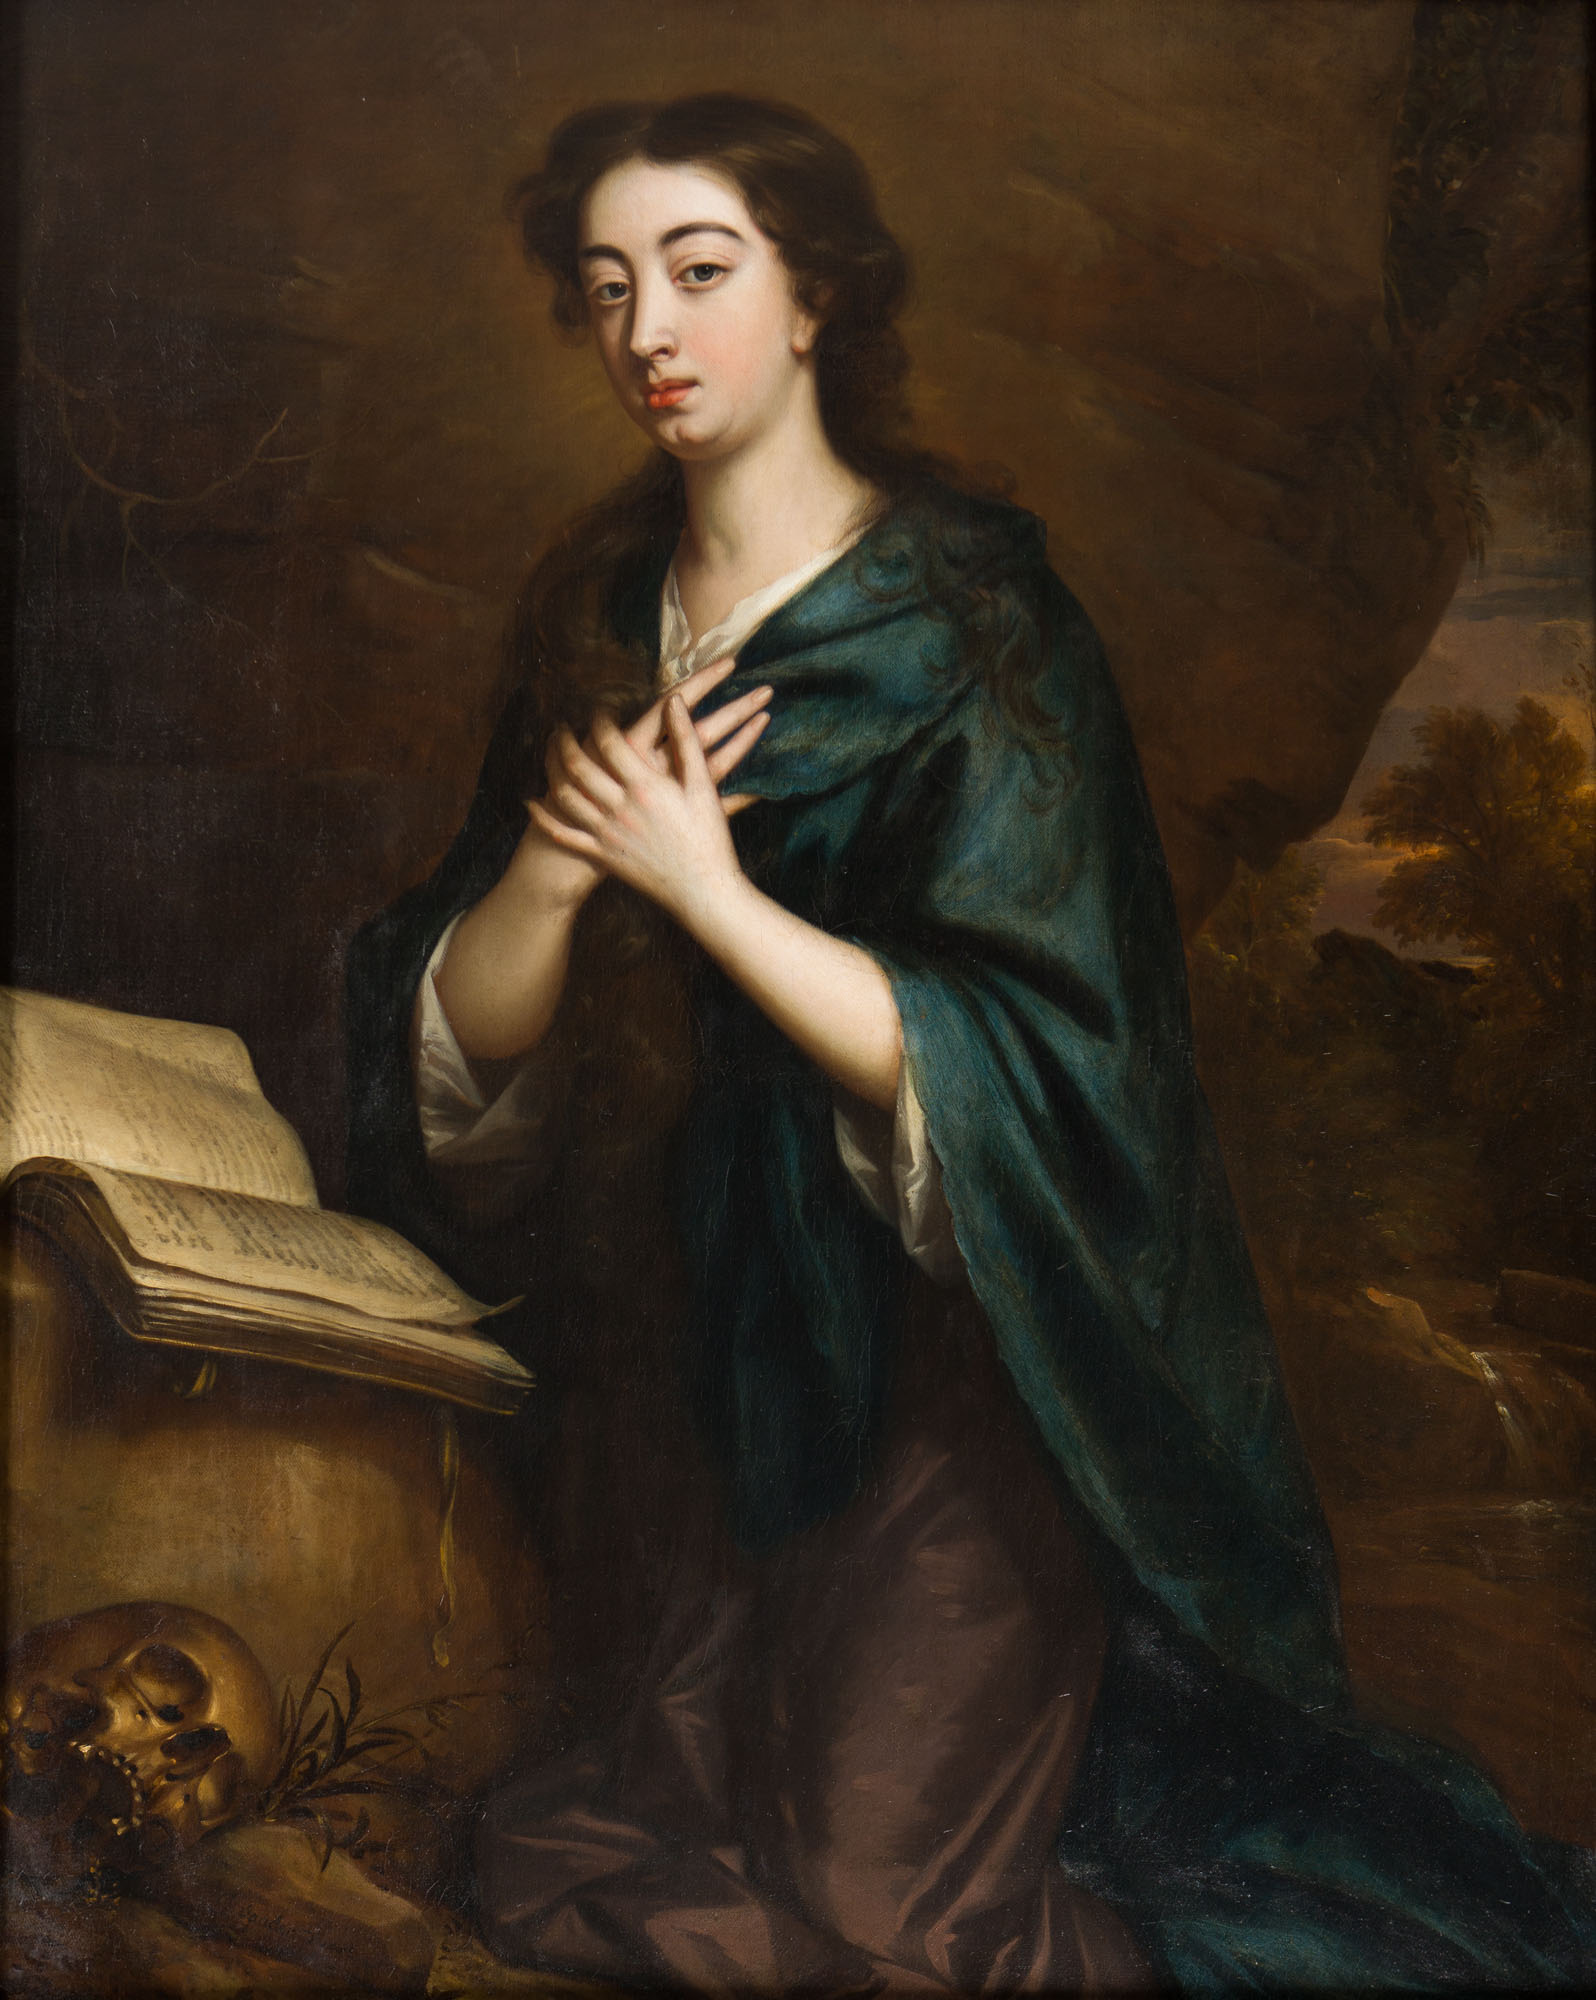 Portrait of Lady Williams, as St. Mary Magdalene Kneeling, by Jan Van Der Vaart (1647-1727).